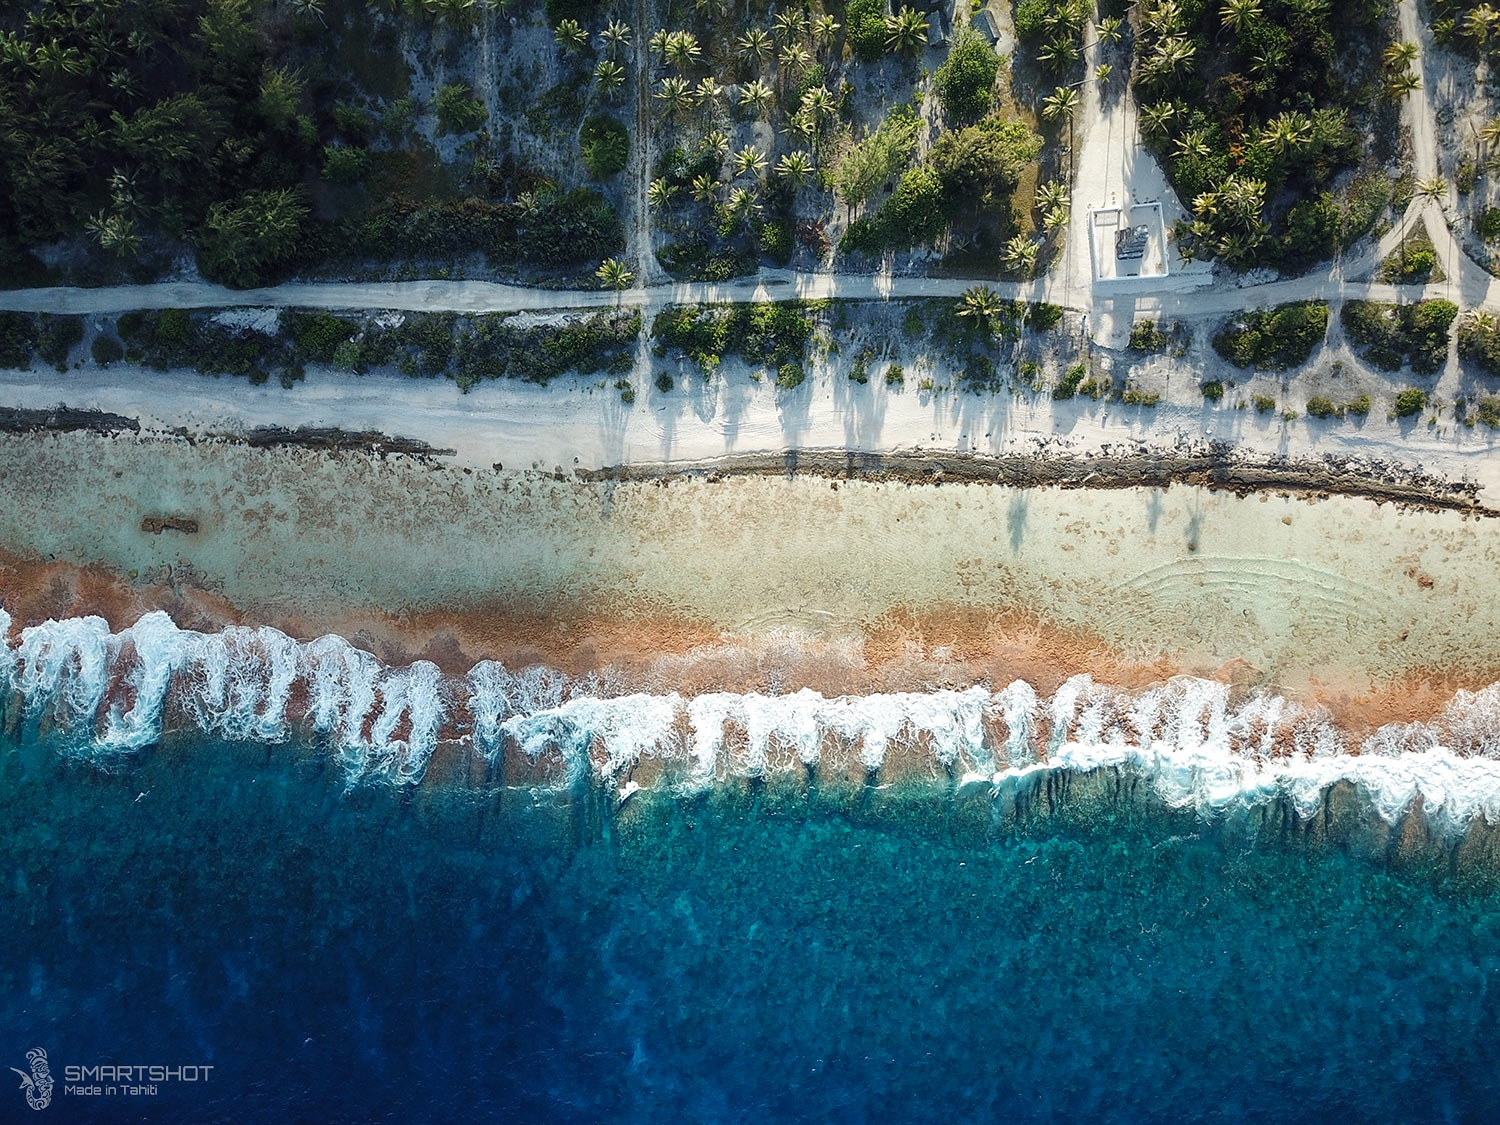 https://tahititourisme.ch/wp-content/uploads/2017/08/drone.jpg